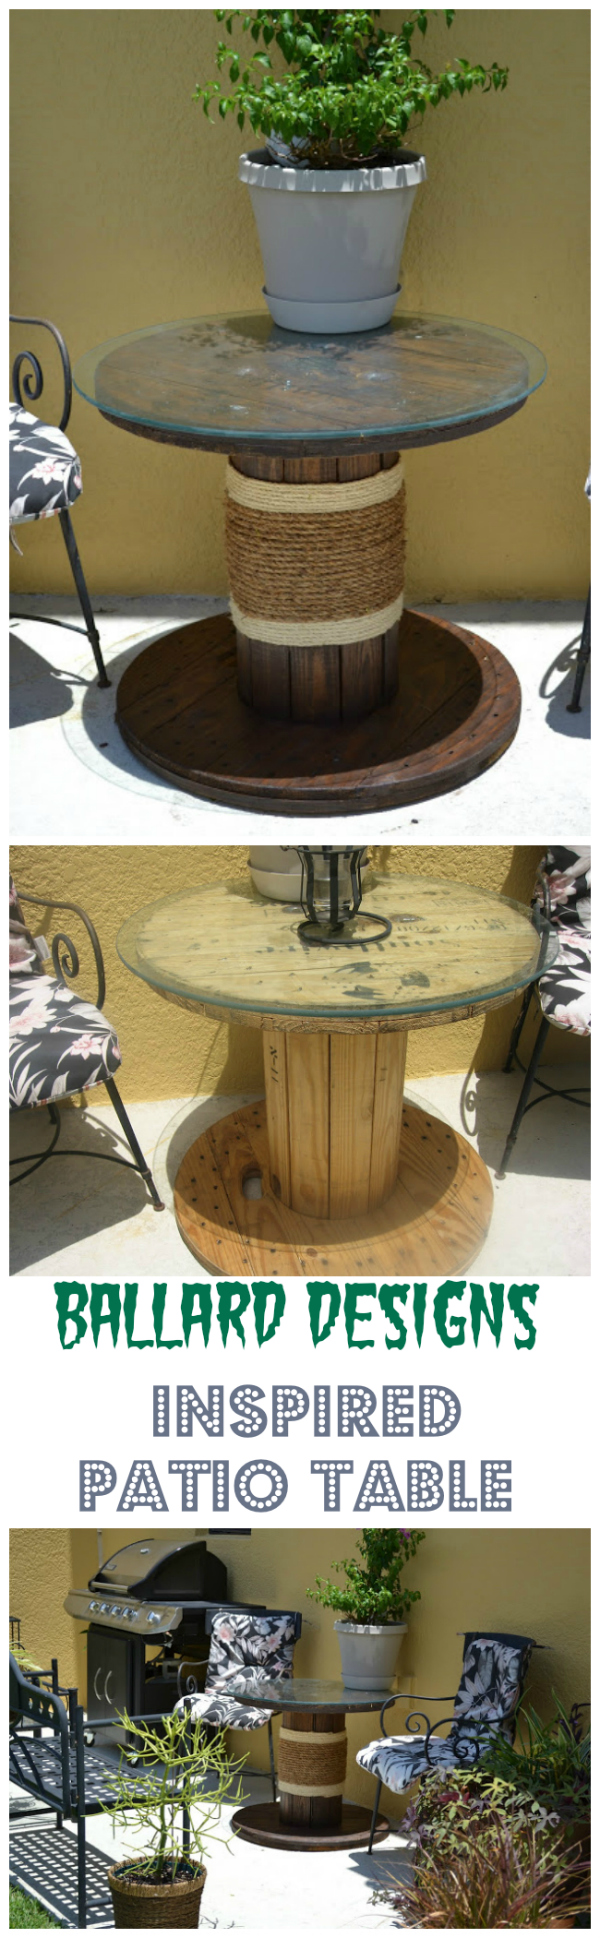 15 cheap and stunning DIY outdoor furniture ideas Ballard Designs Inspired Patio Table